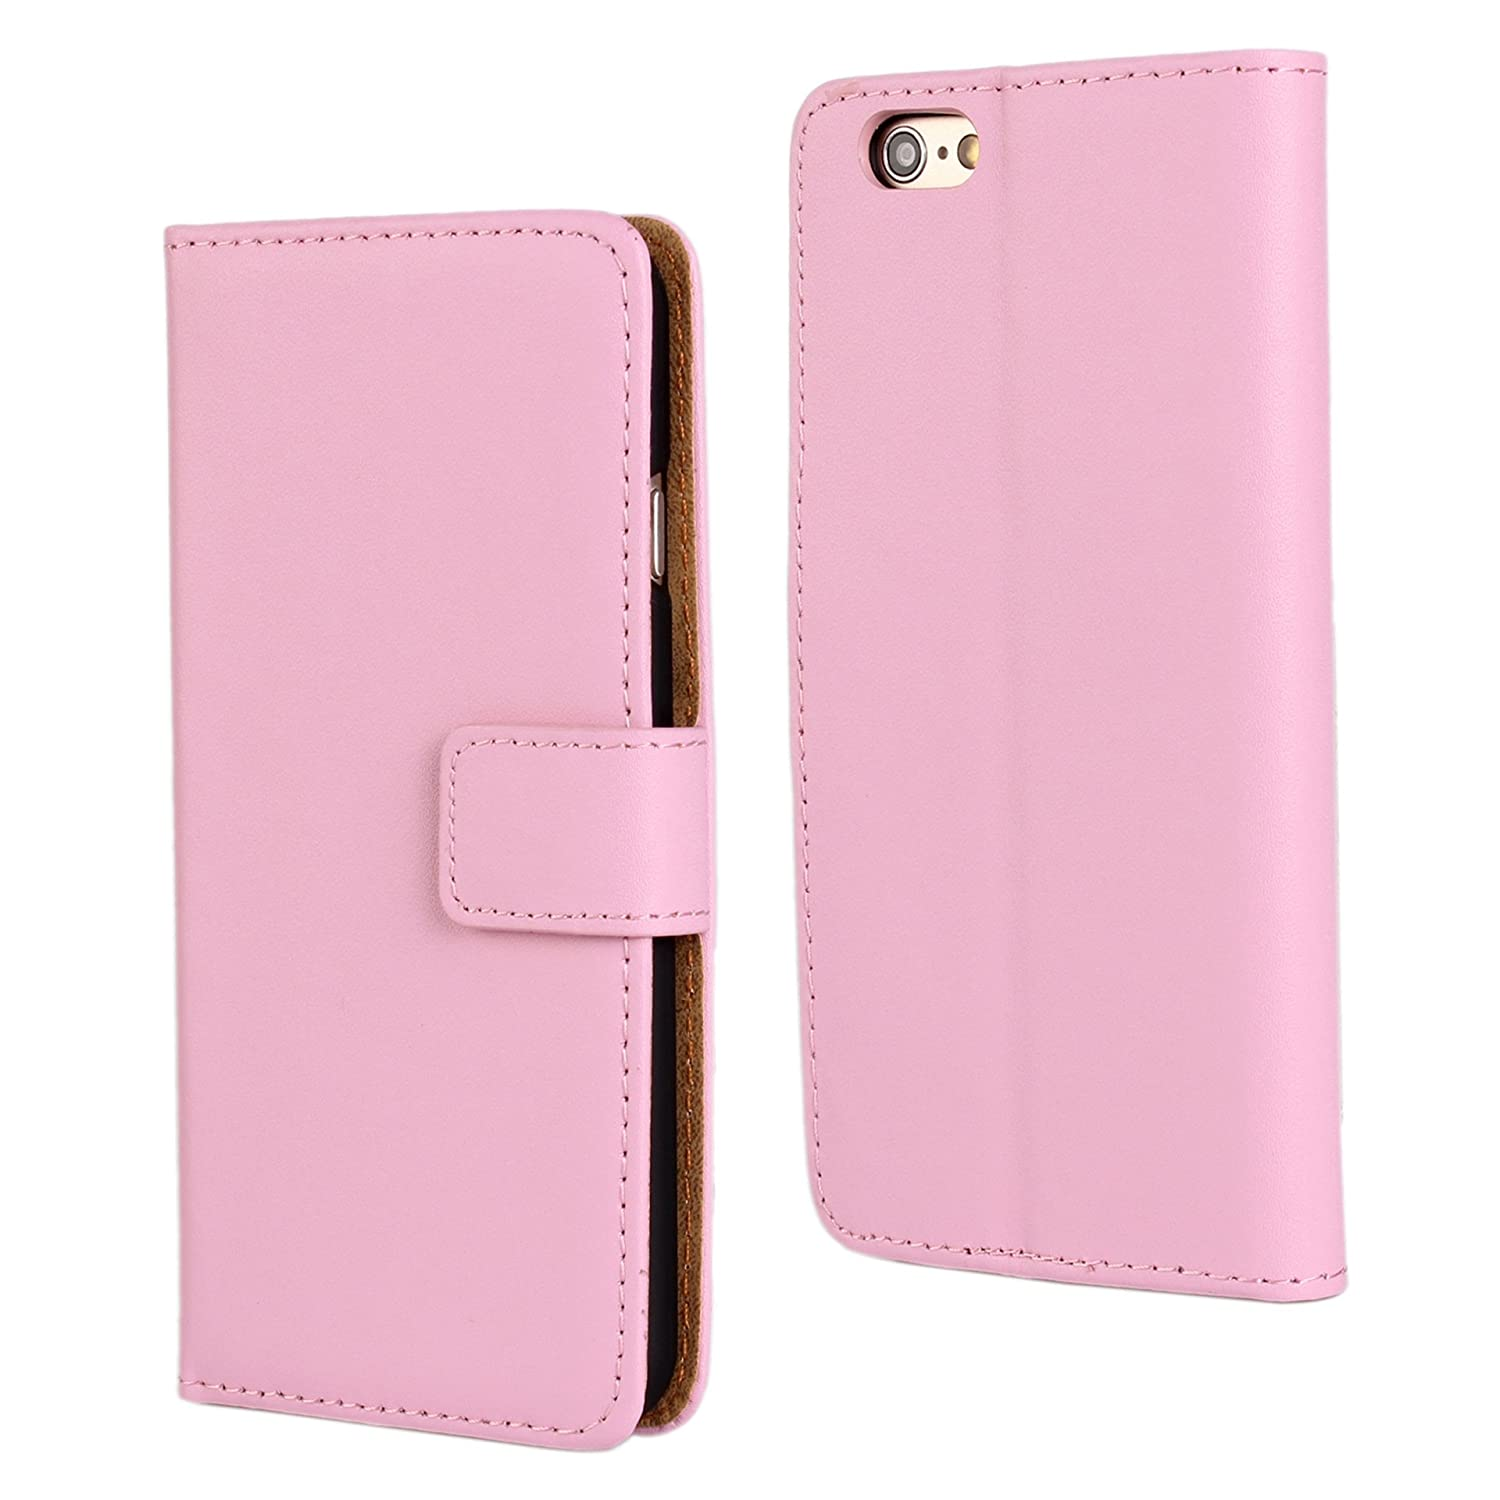 iphone 6 Plus/iphone 6s Plus Case Cavor Genuine Leather Case [Wallet Function] Magnetic Closure Flip Stand Bookstyle Cover with Card Slot for Apple iphone 6 Plus/6s Plus (Orange)- 5.5 Inch